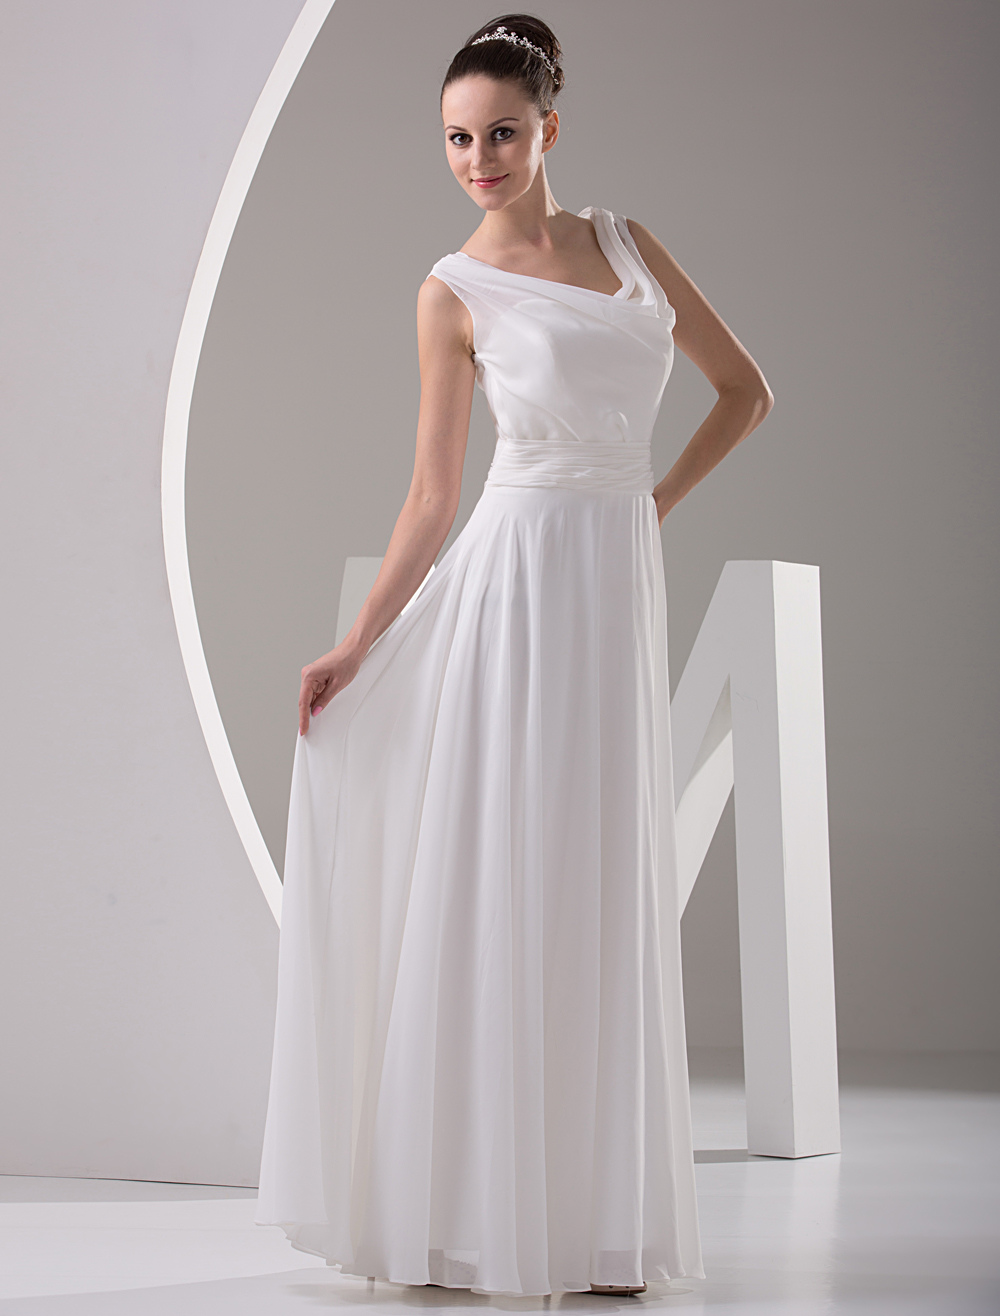 White Sleeeveless Floor Length Chiffon Bridesmaid Dresses